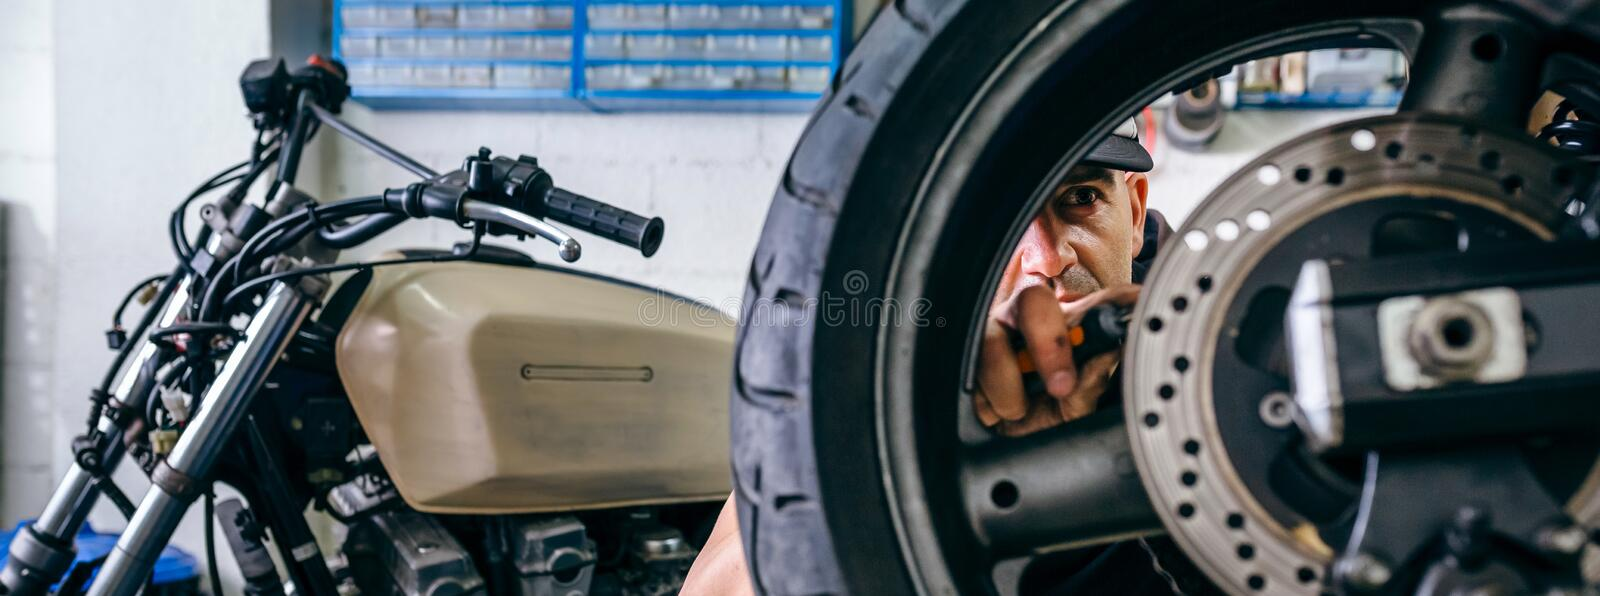 Mechanic fixing custom motorcycle wheel. In his workshop. Selective focus on mechanic in background royalty free stock images